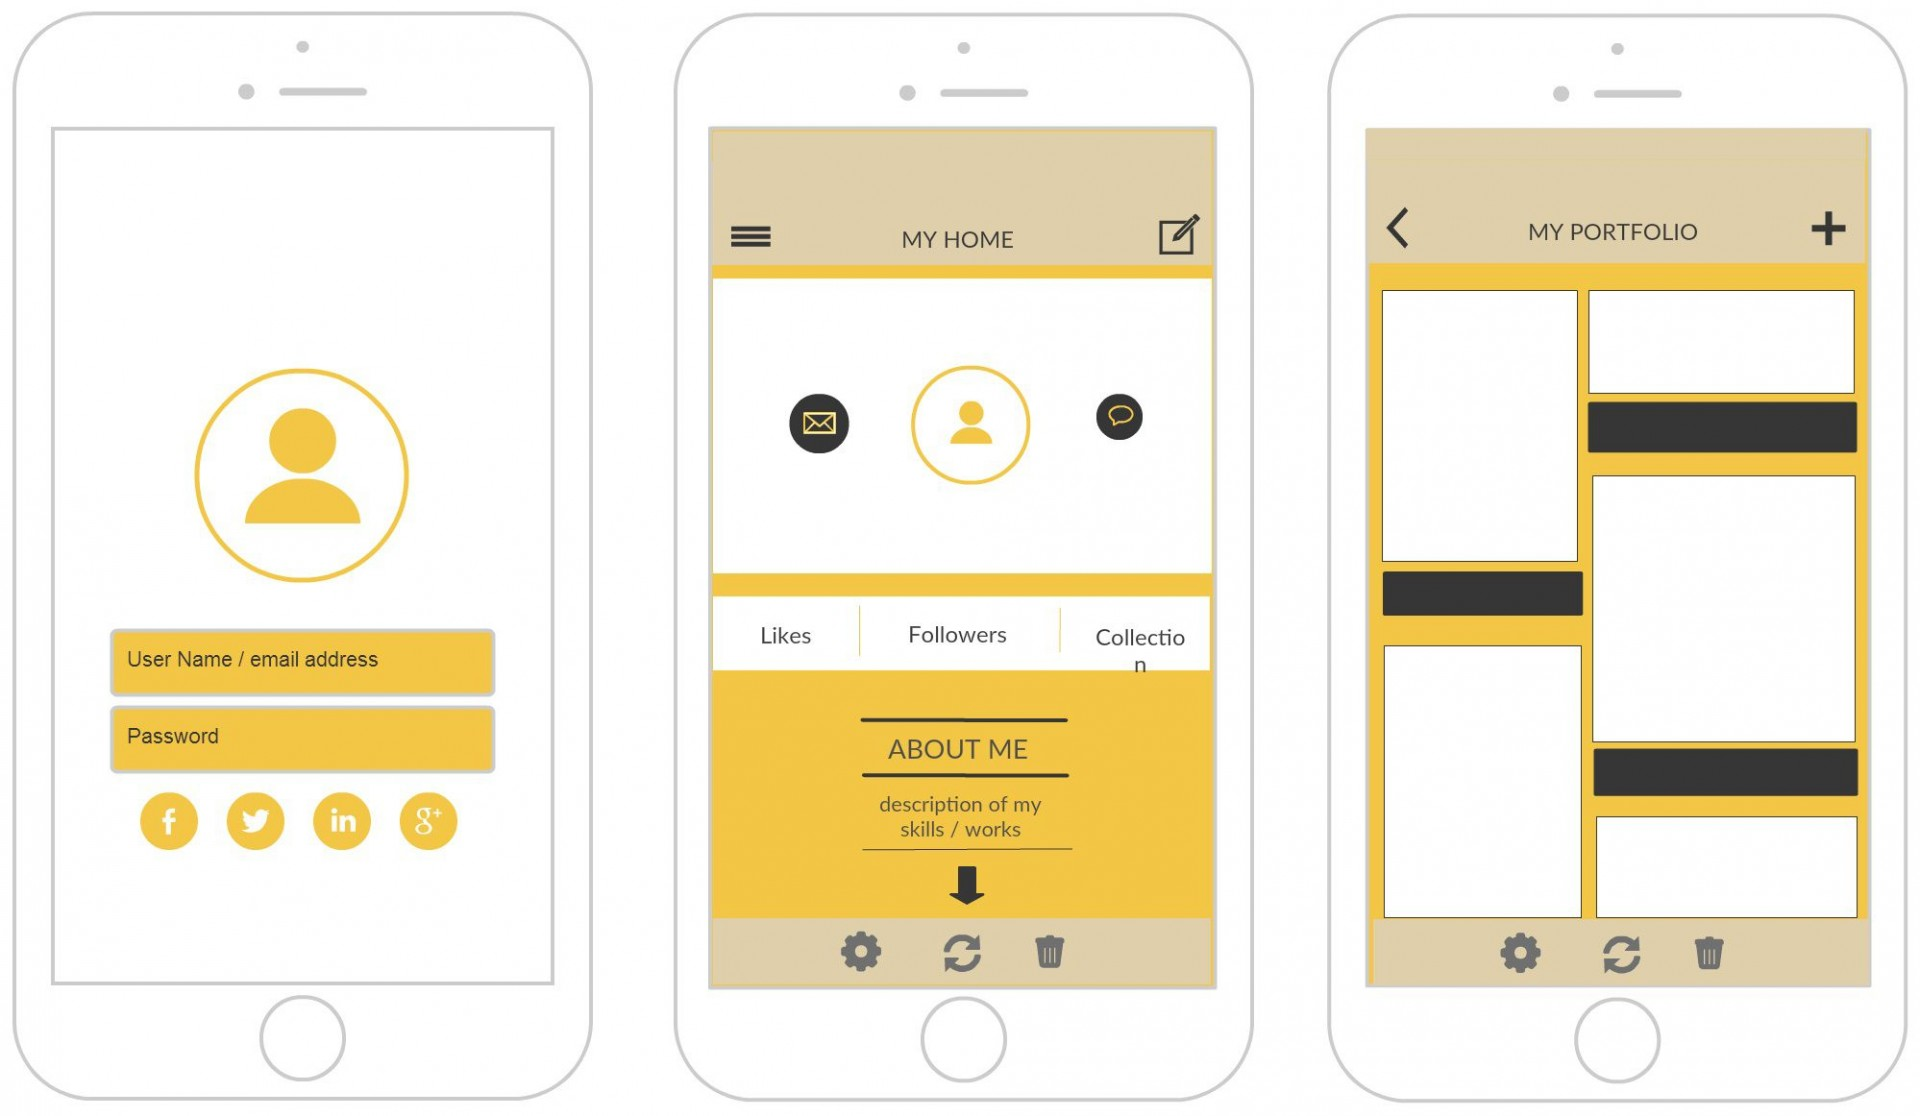 006 Stunning Iphone App Design Template Inspiration  Templates Io Sketch Psd Free Download1920